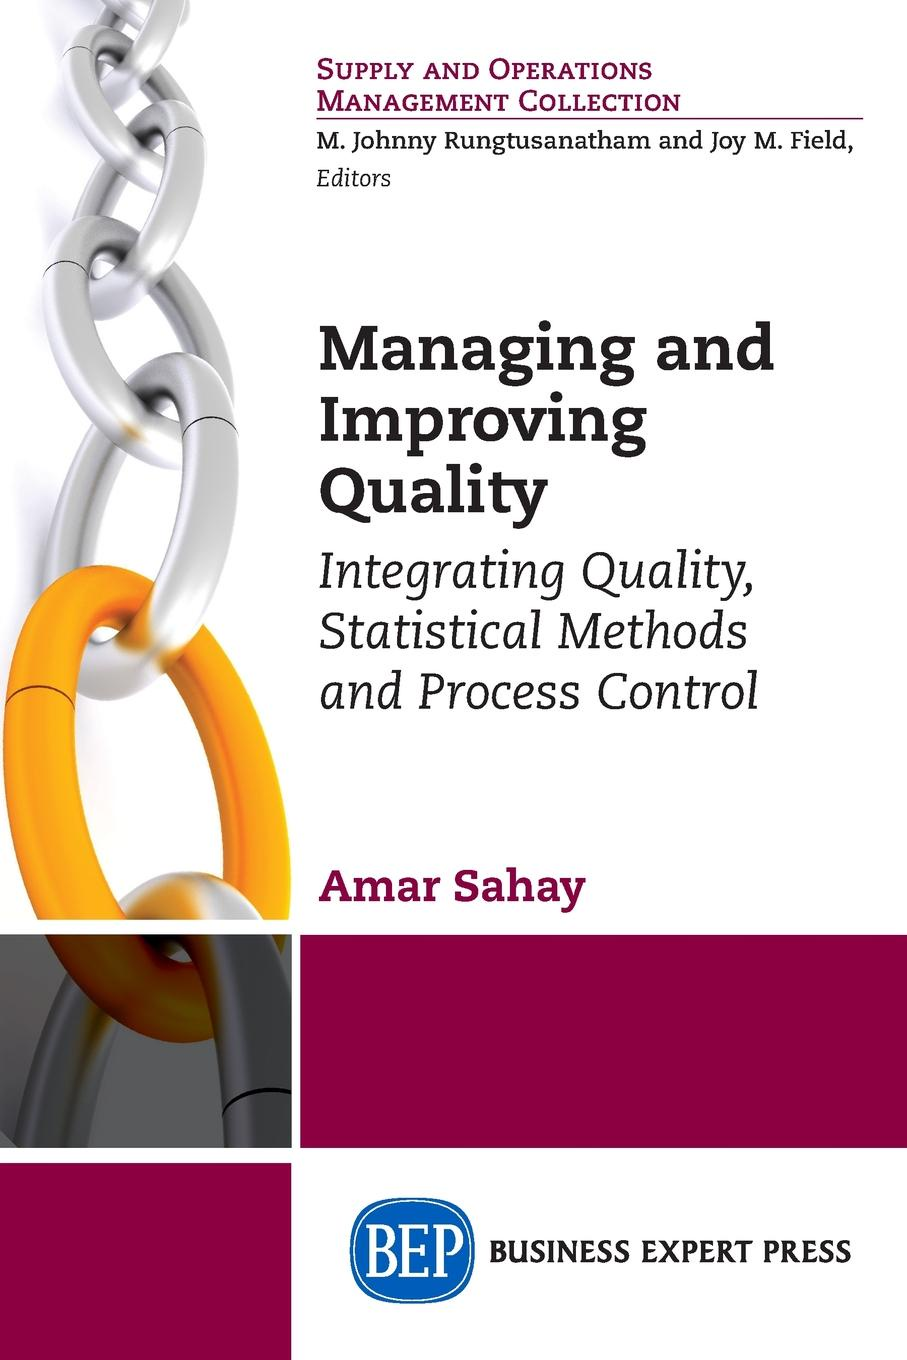 Amar Sahay Managing and Improving Quality. Integrating Quality, Statistical Methods and Process Control charles p quesenberry spc methods for quality improvement